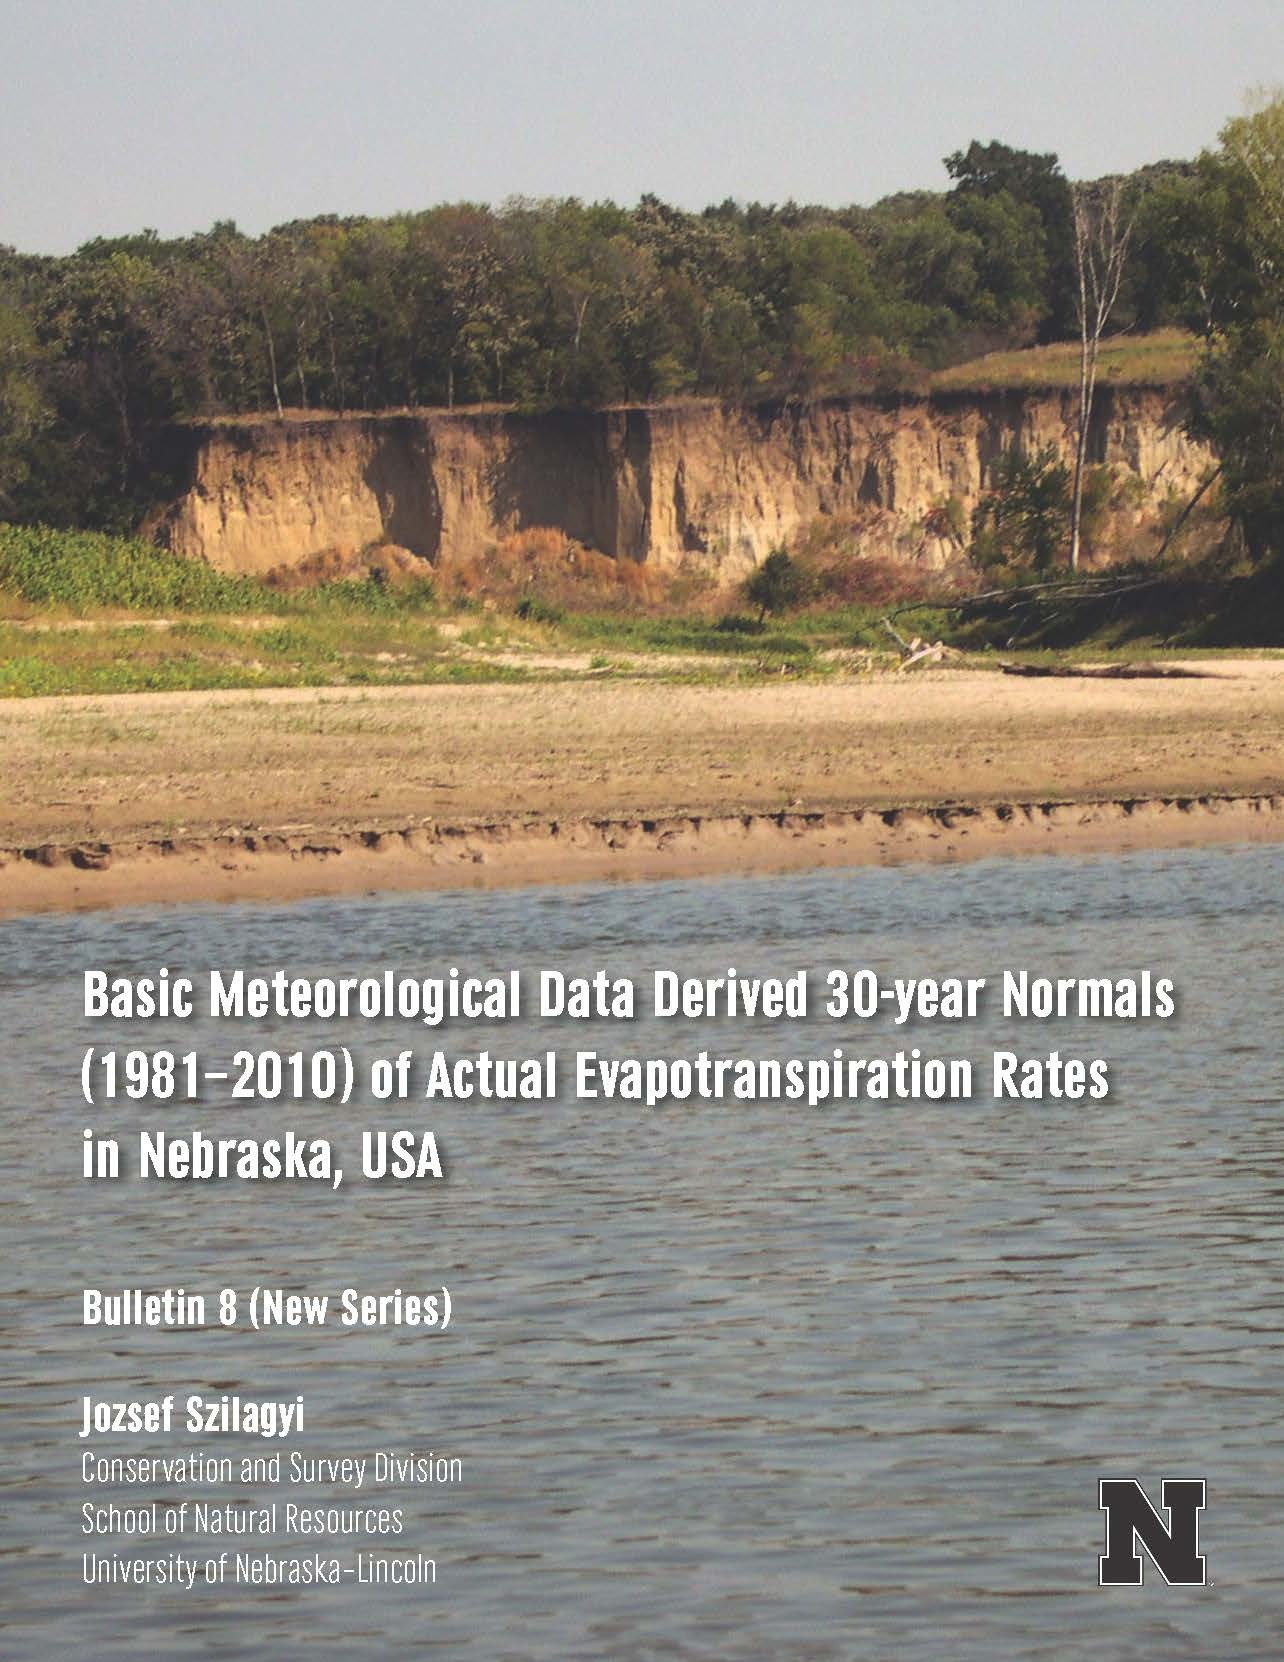 Basic Meteorological Data Derived 30-year Normals (1981 - 2010) of Actual Evaportranspiration Rates in Nebraska, USA (CB-8(NS))